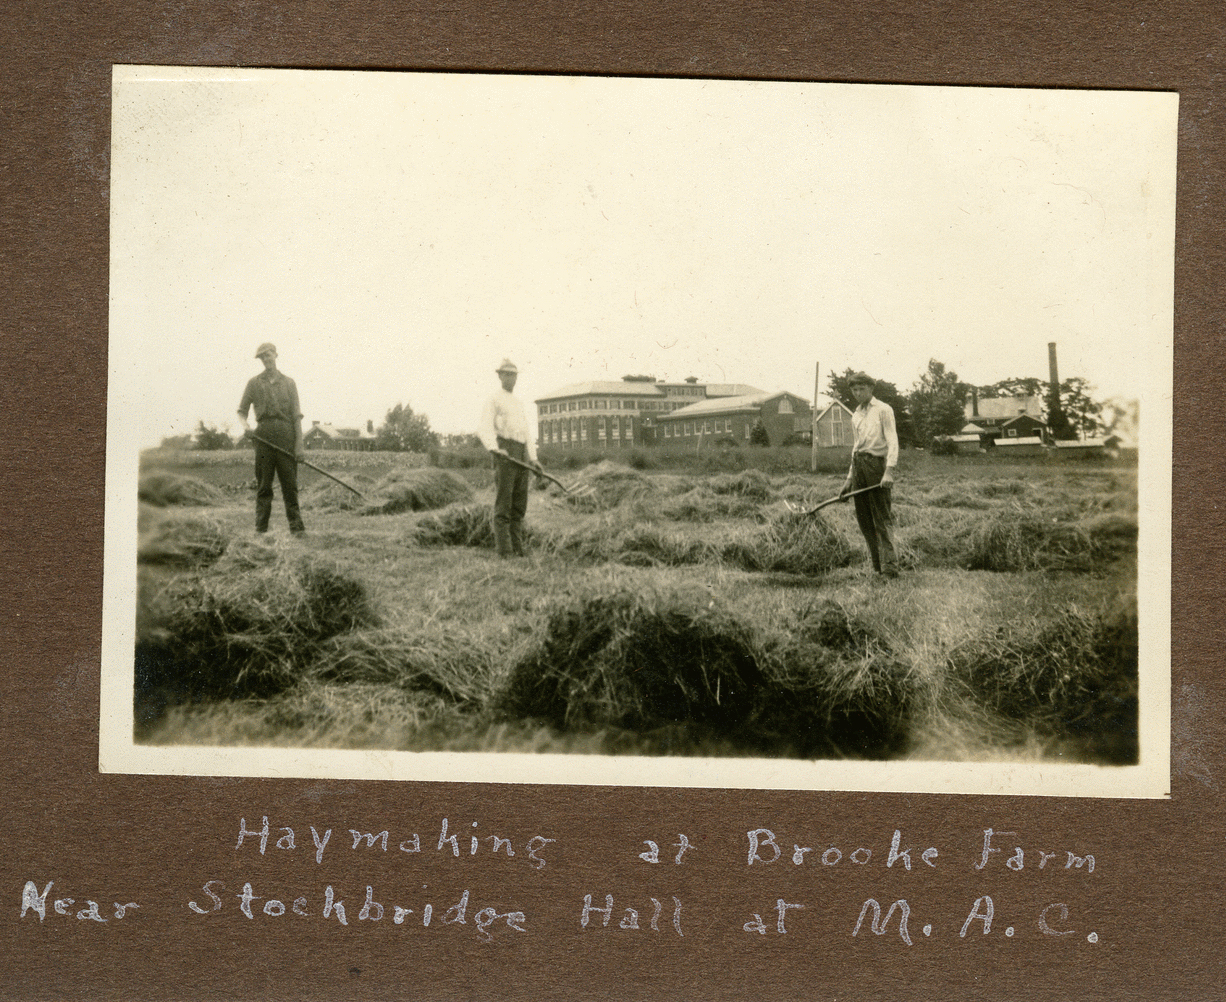 Haymaking on campus in 1922 or 1923.